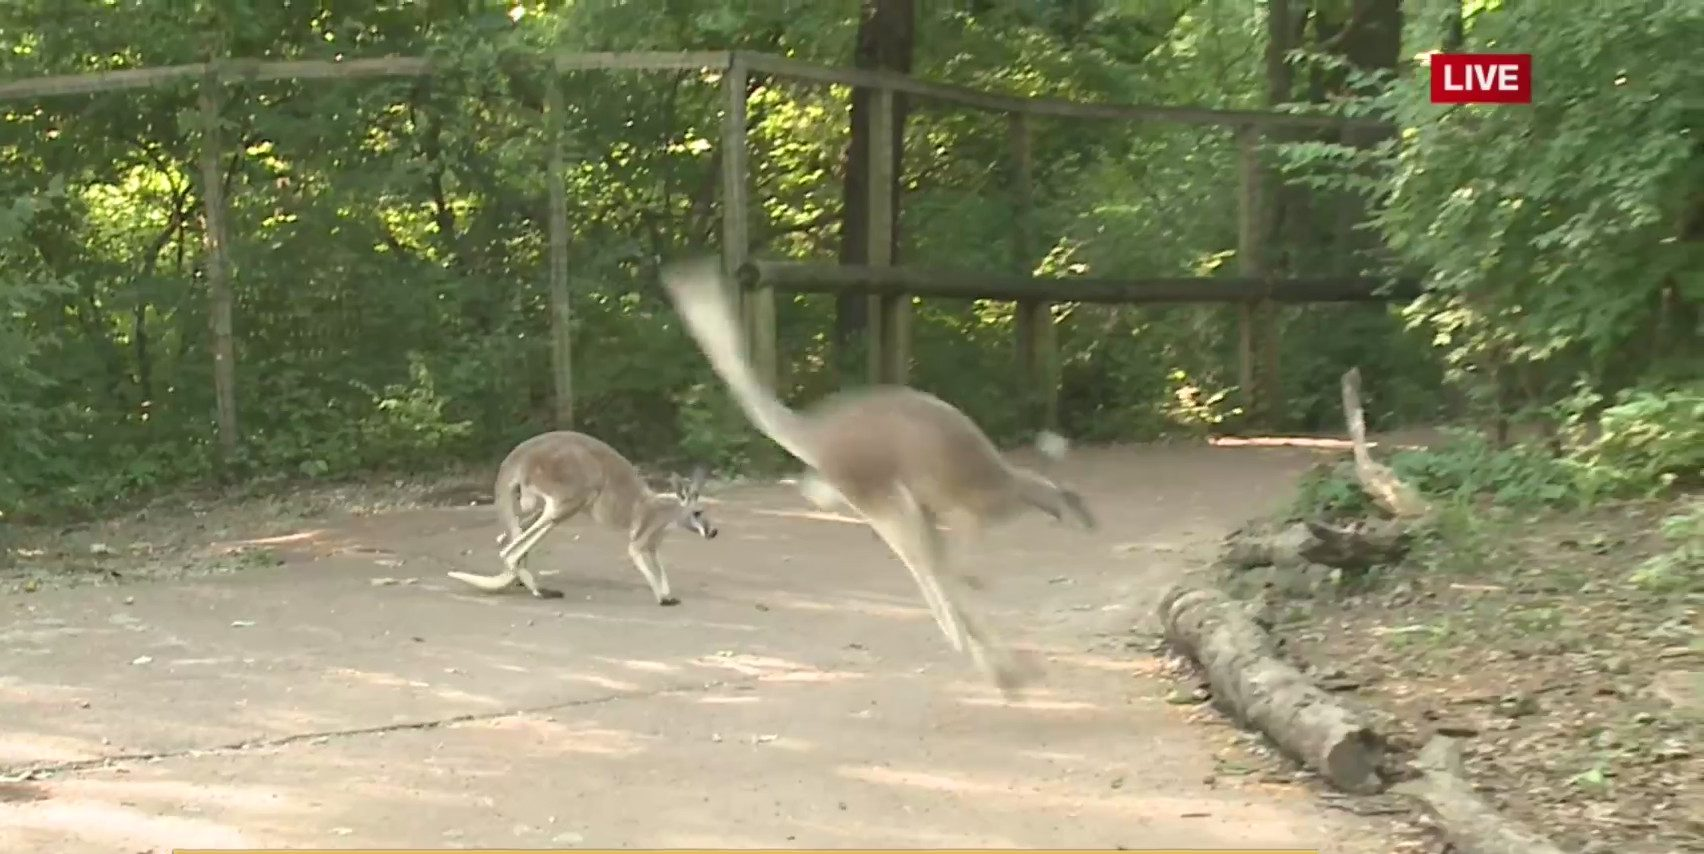 Picture of kangaroo hopping through exhibit